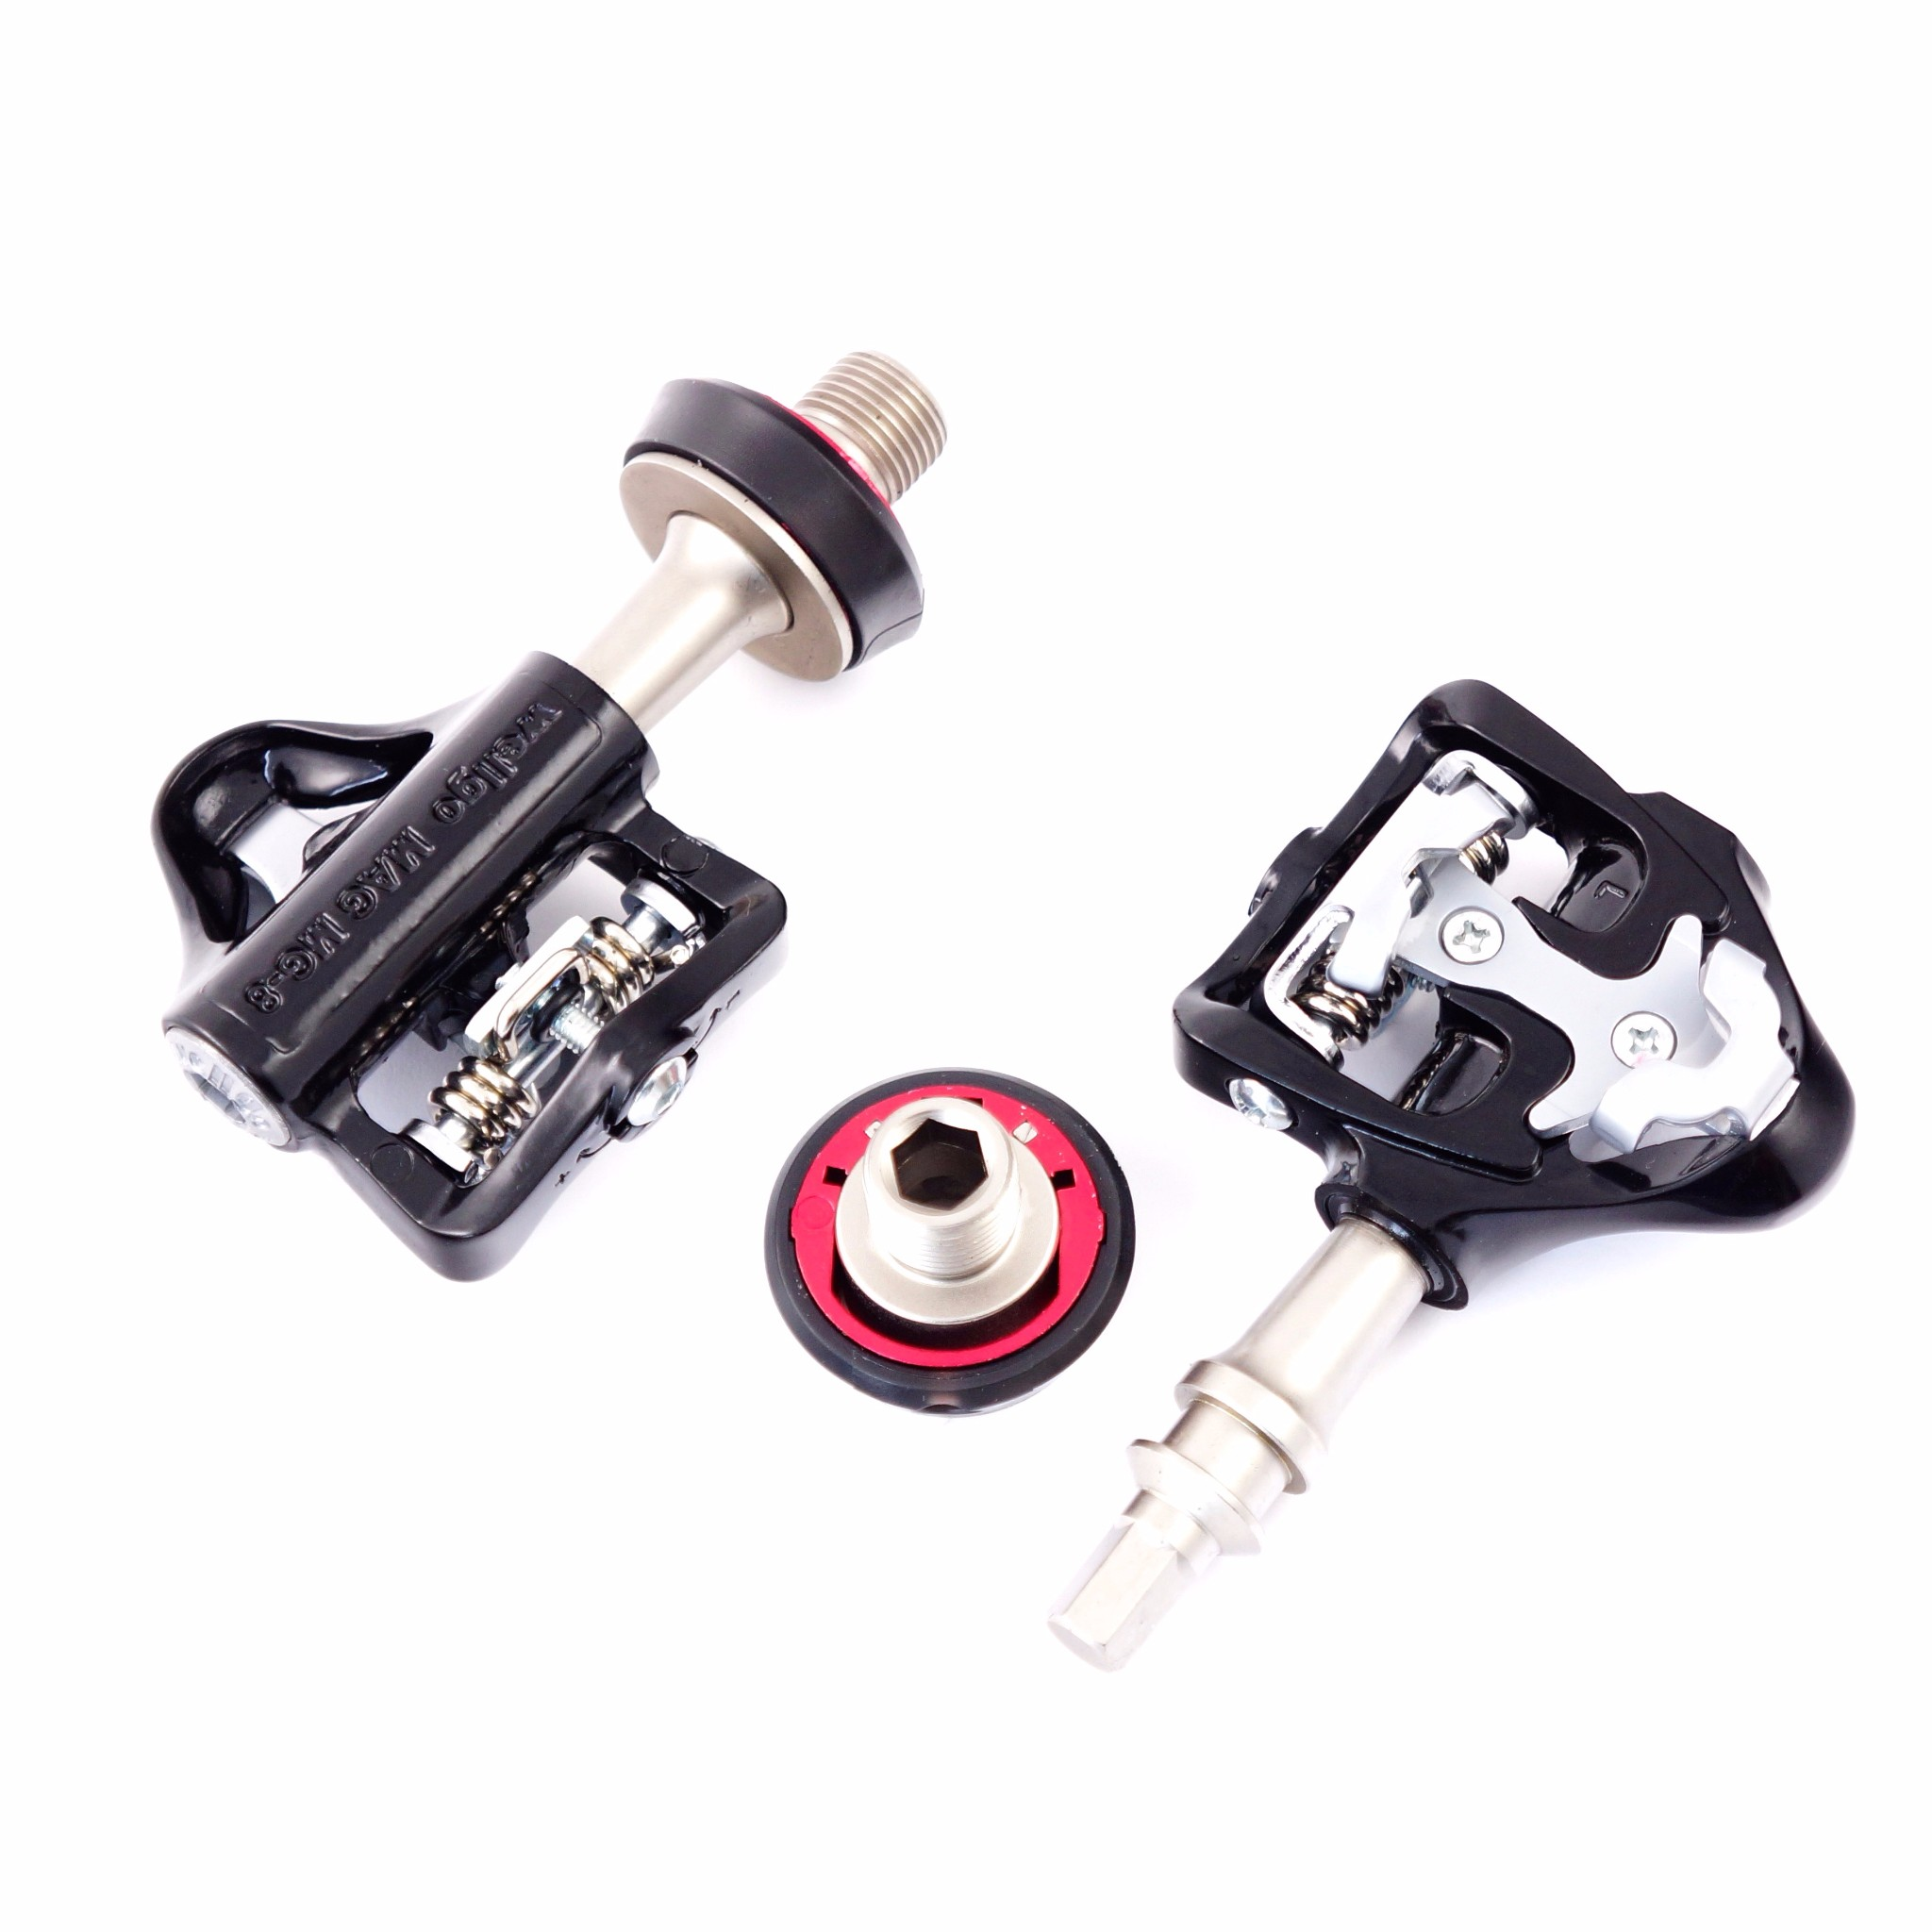 M194 Quick Release Bearing Pedal Wellgo Black